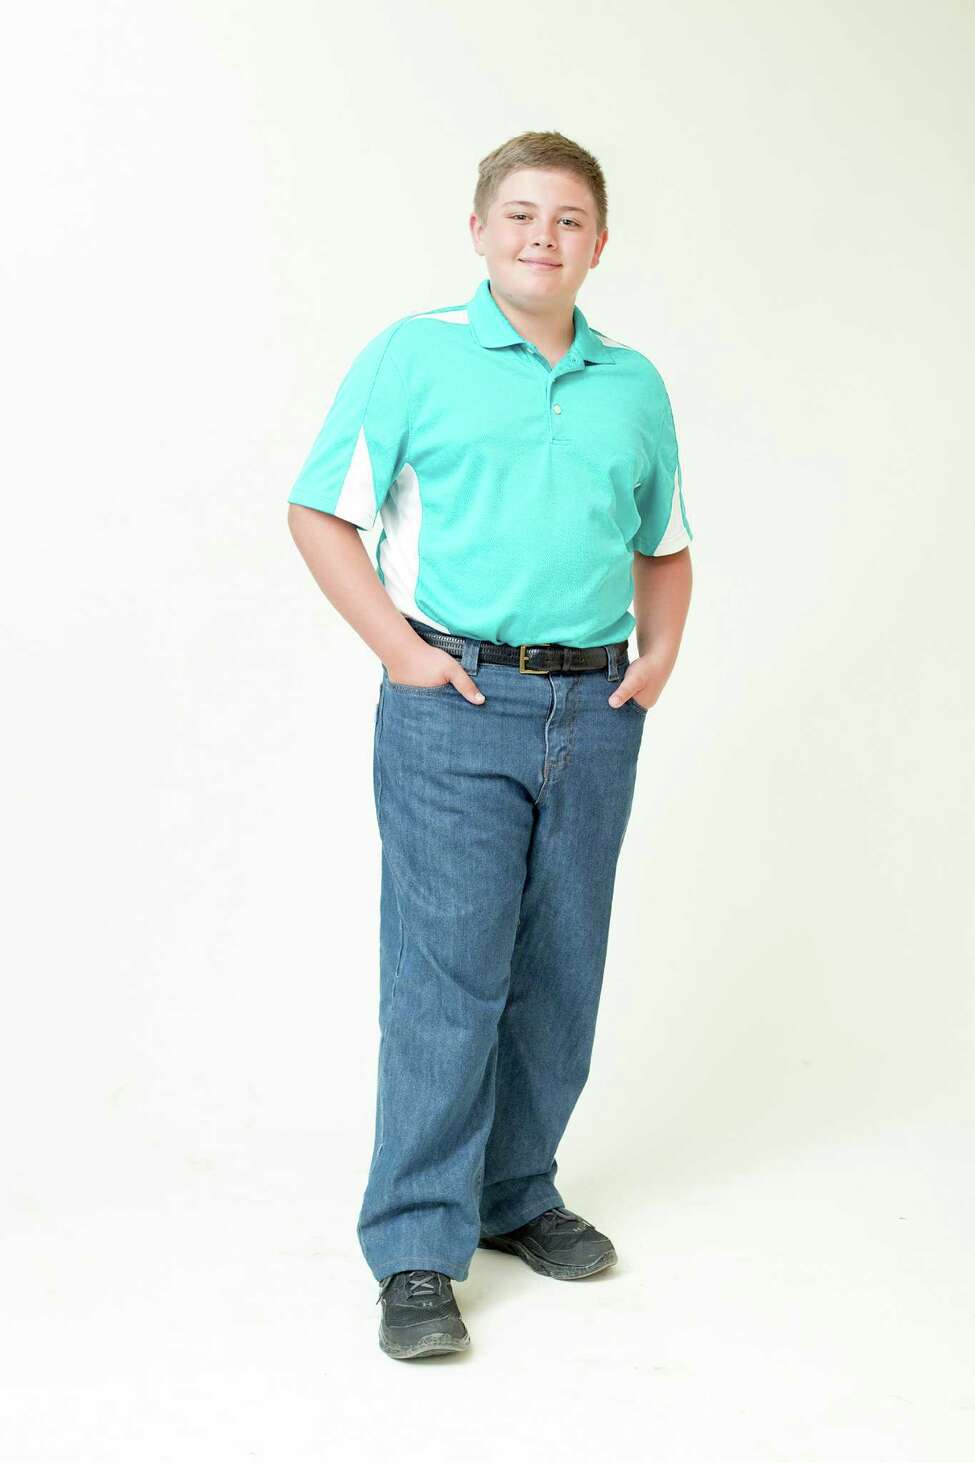 Alec Frazee, 11, displays Big Kidz Jeans on Thursday, June 6, 2014 in Albany, N.Y. Steve Frazee is the founder of Big Kidz Jeanz, a company he started because he had a hard time finding pants to fit his